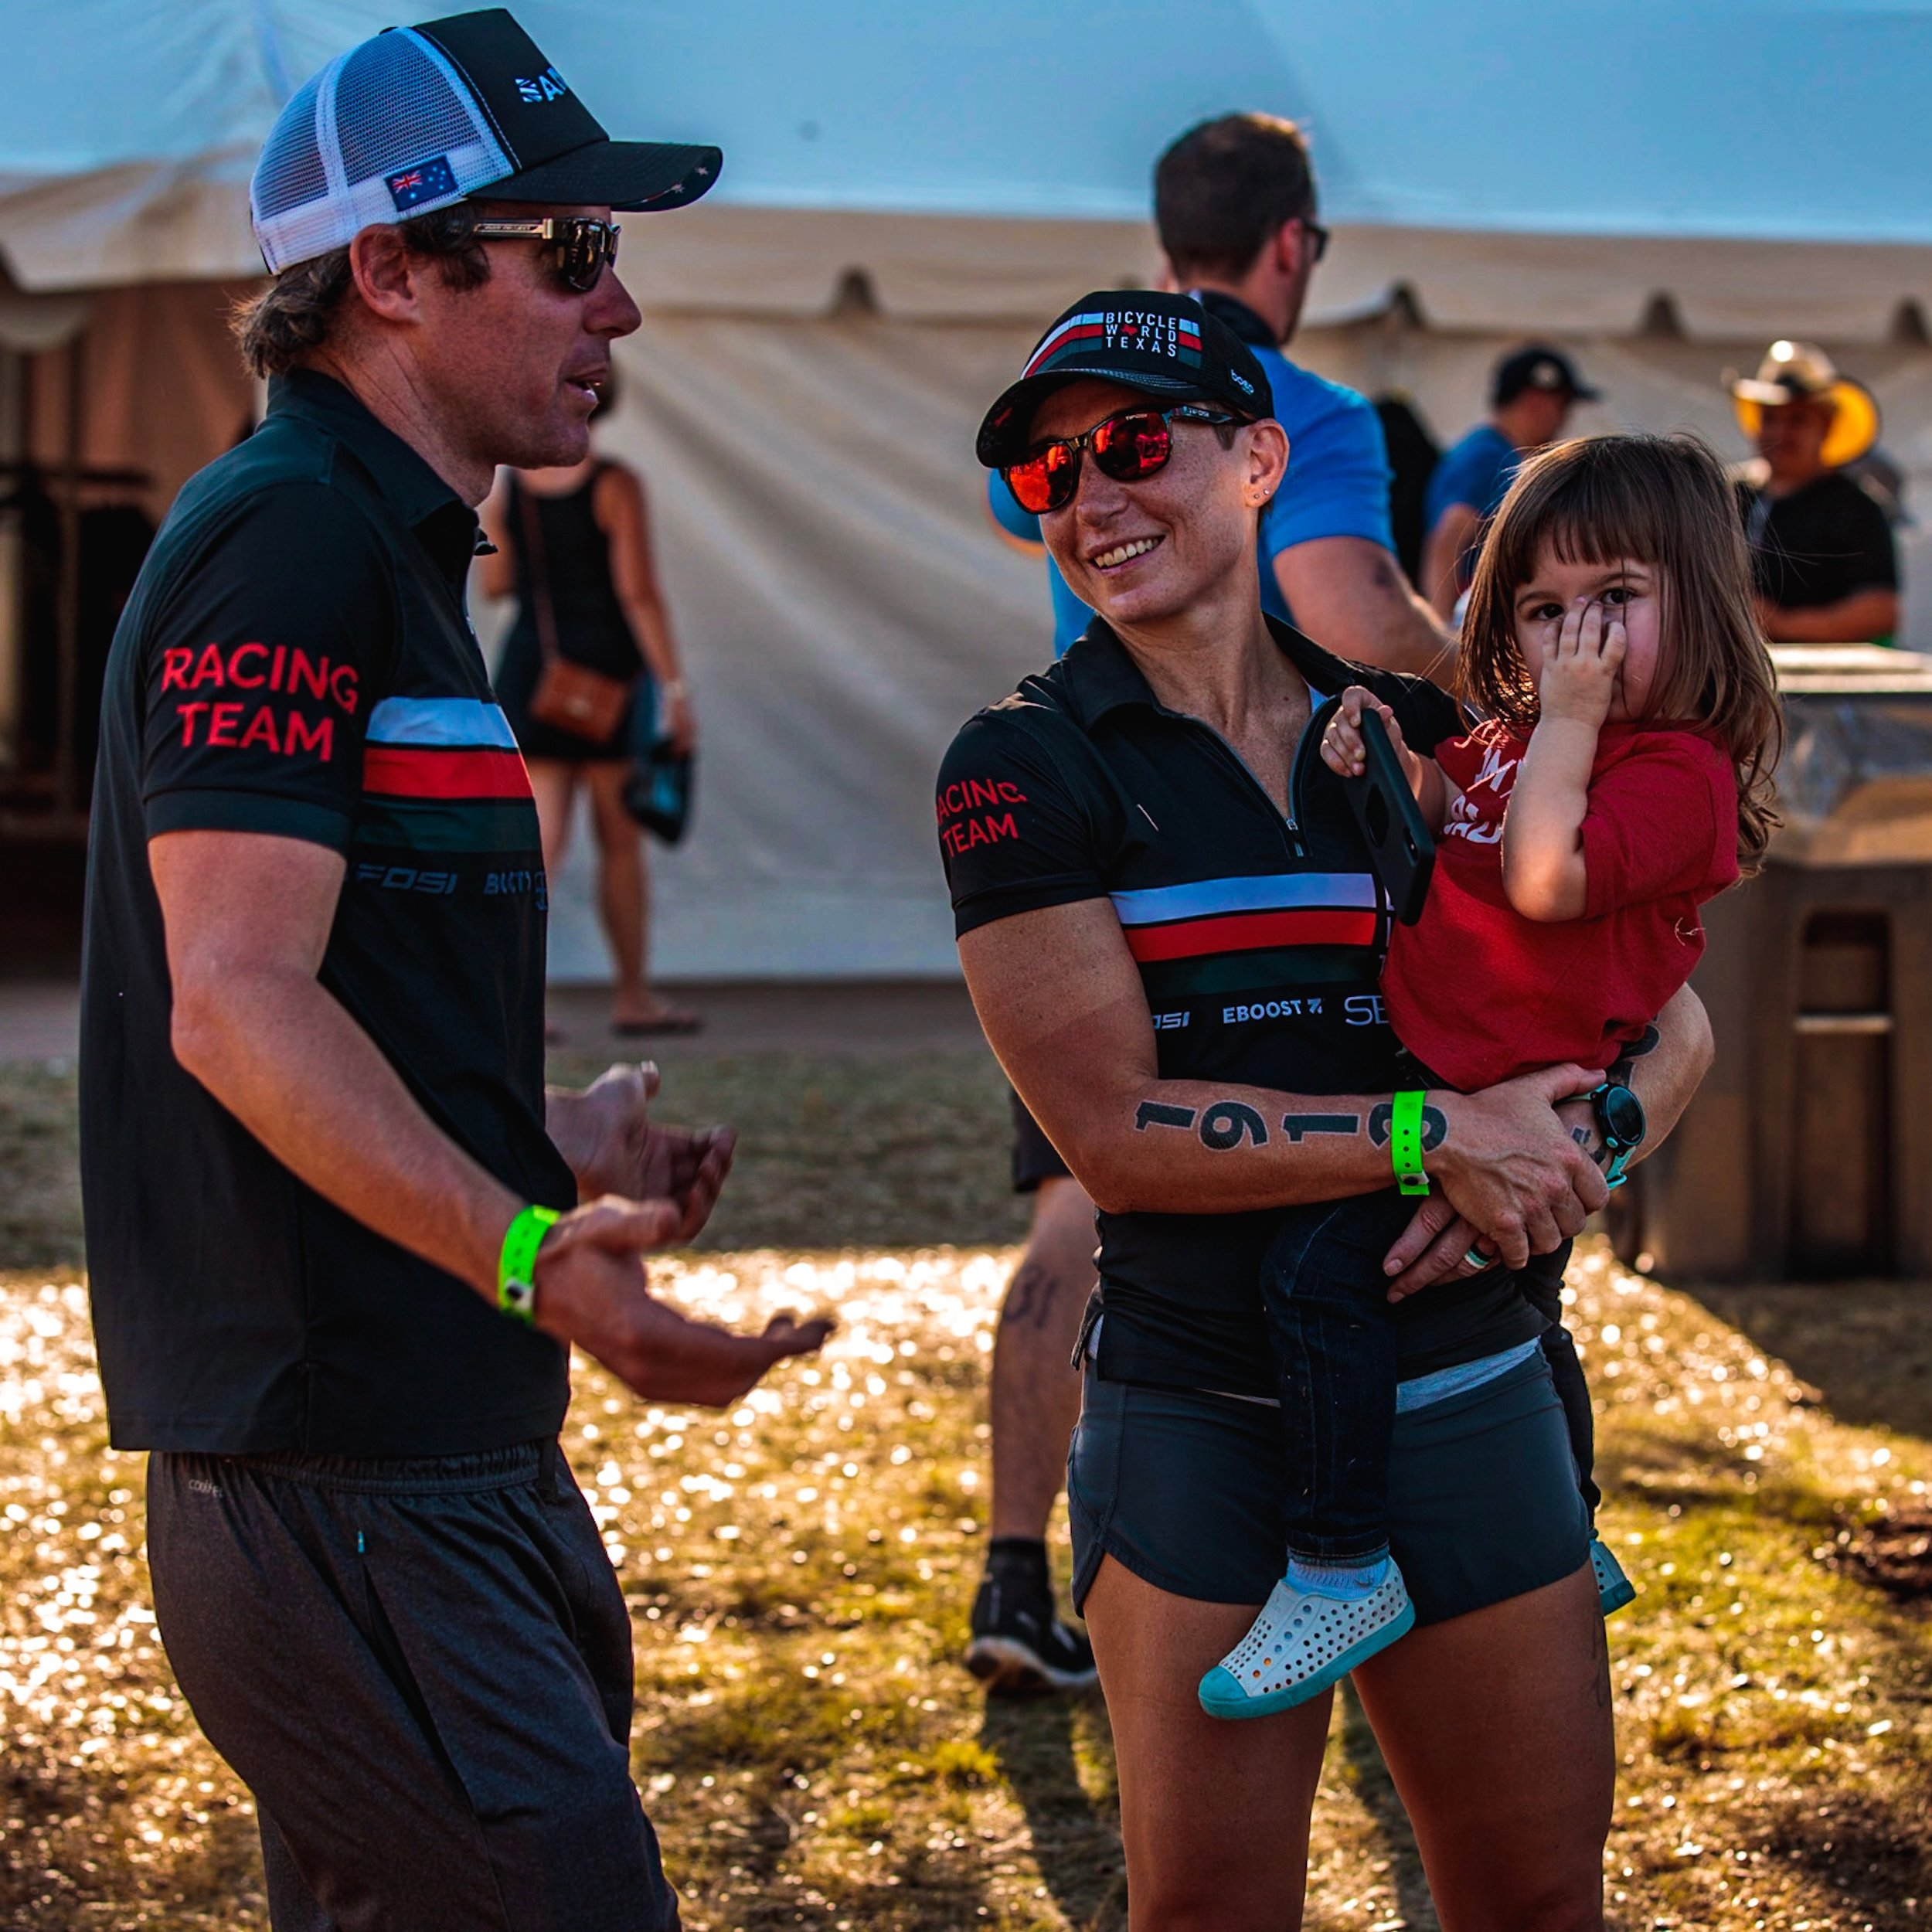 Me and Ada chatting with Barny after Ironman 70.3 Waco. (Photo by Travis Swicegood)